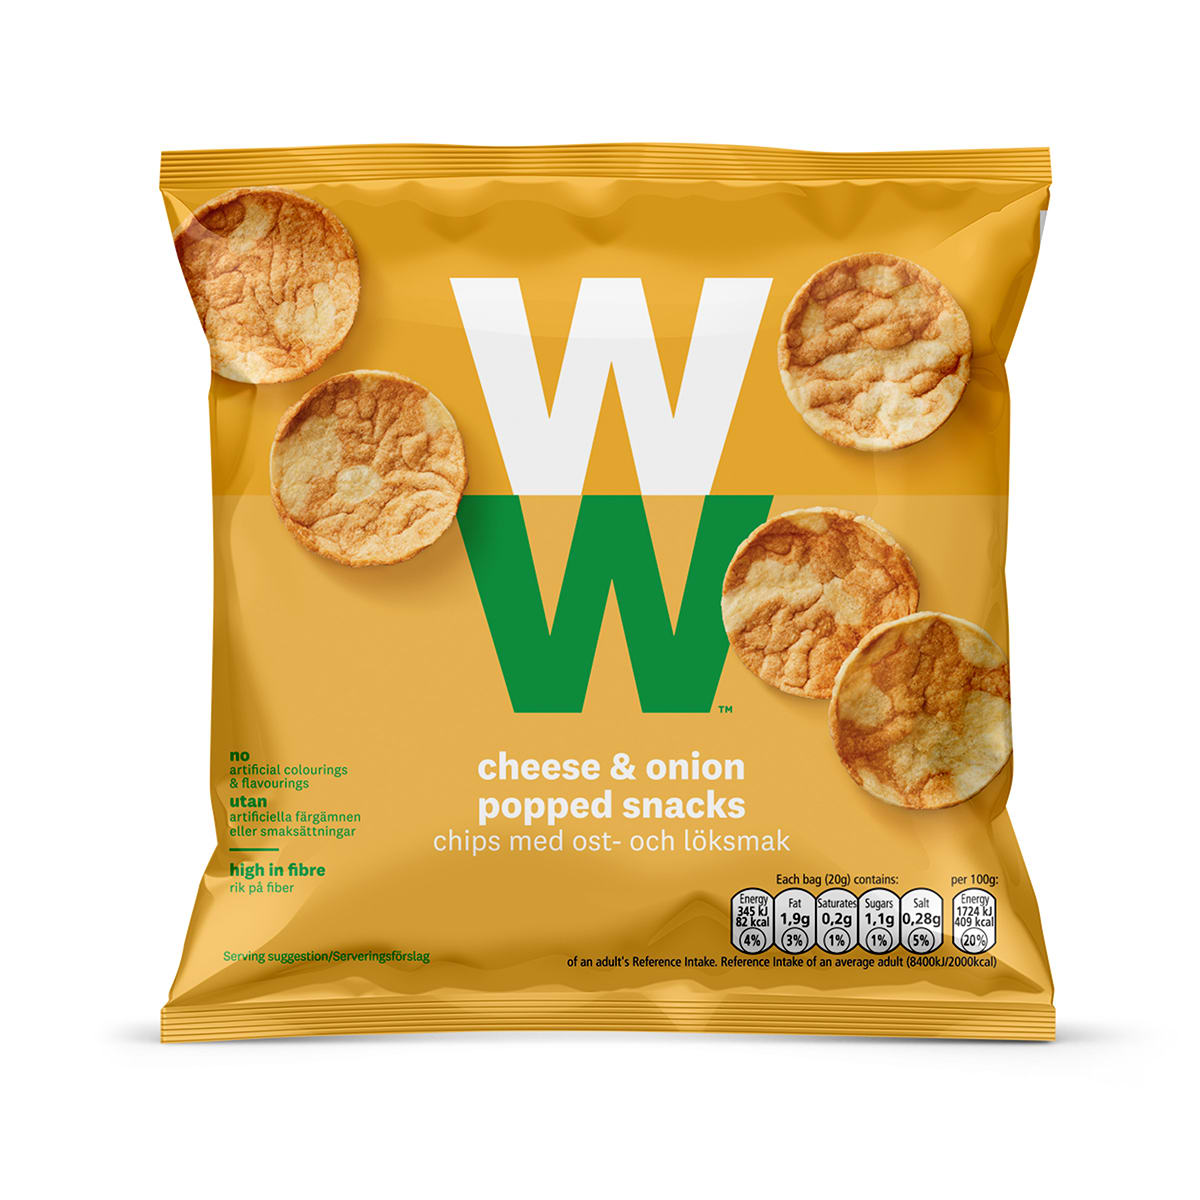 Classic flavour tangy cheese and sweet onion savoury snacks, soya and chickpea, baked not fried, 2 SmartPoints values per bag, suitable for vegetarians